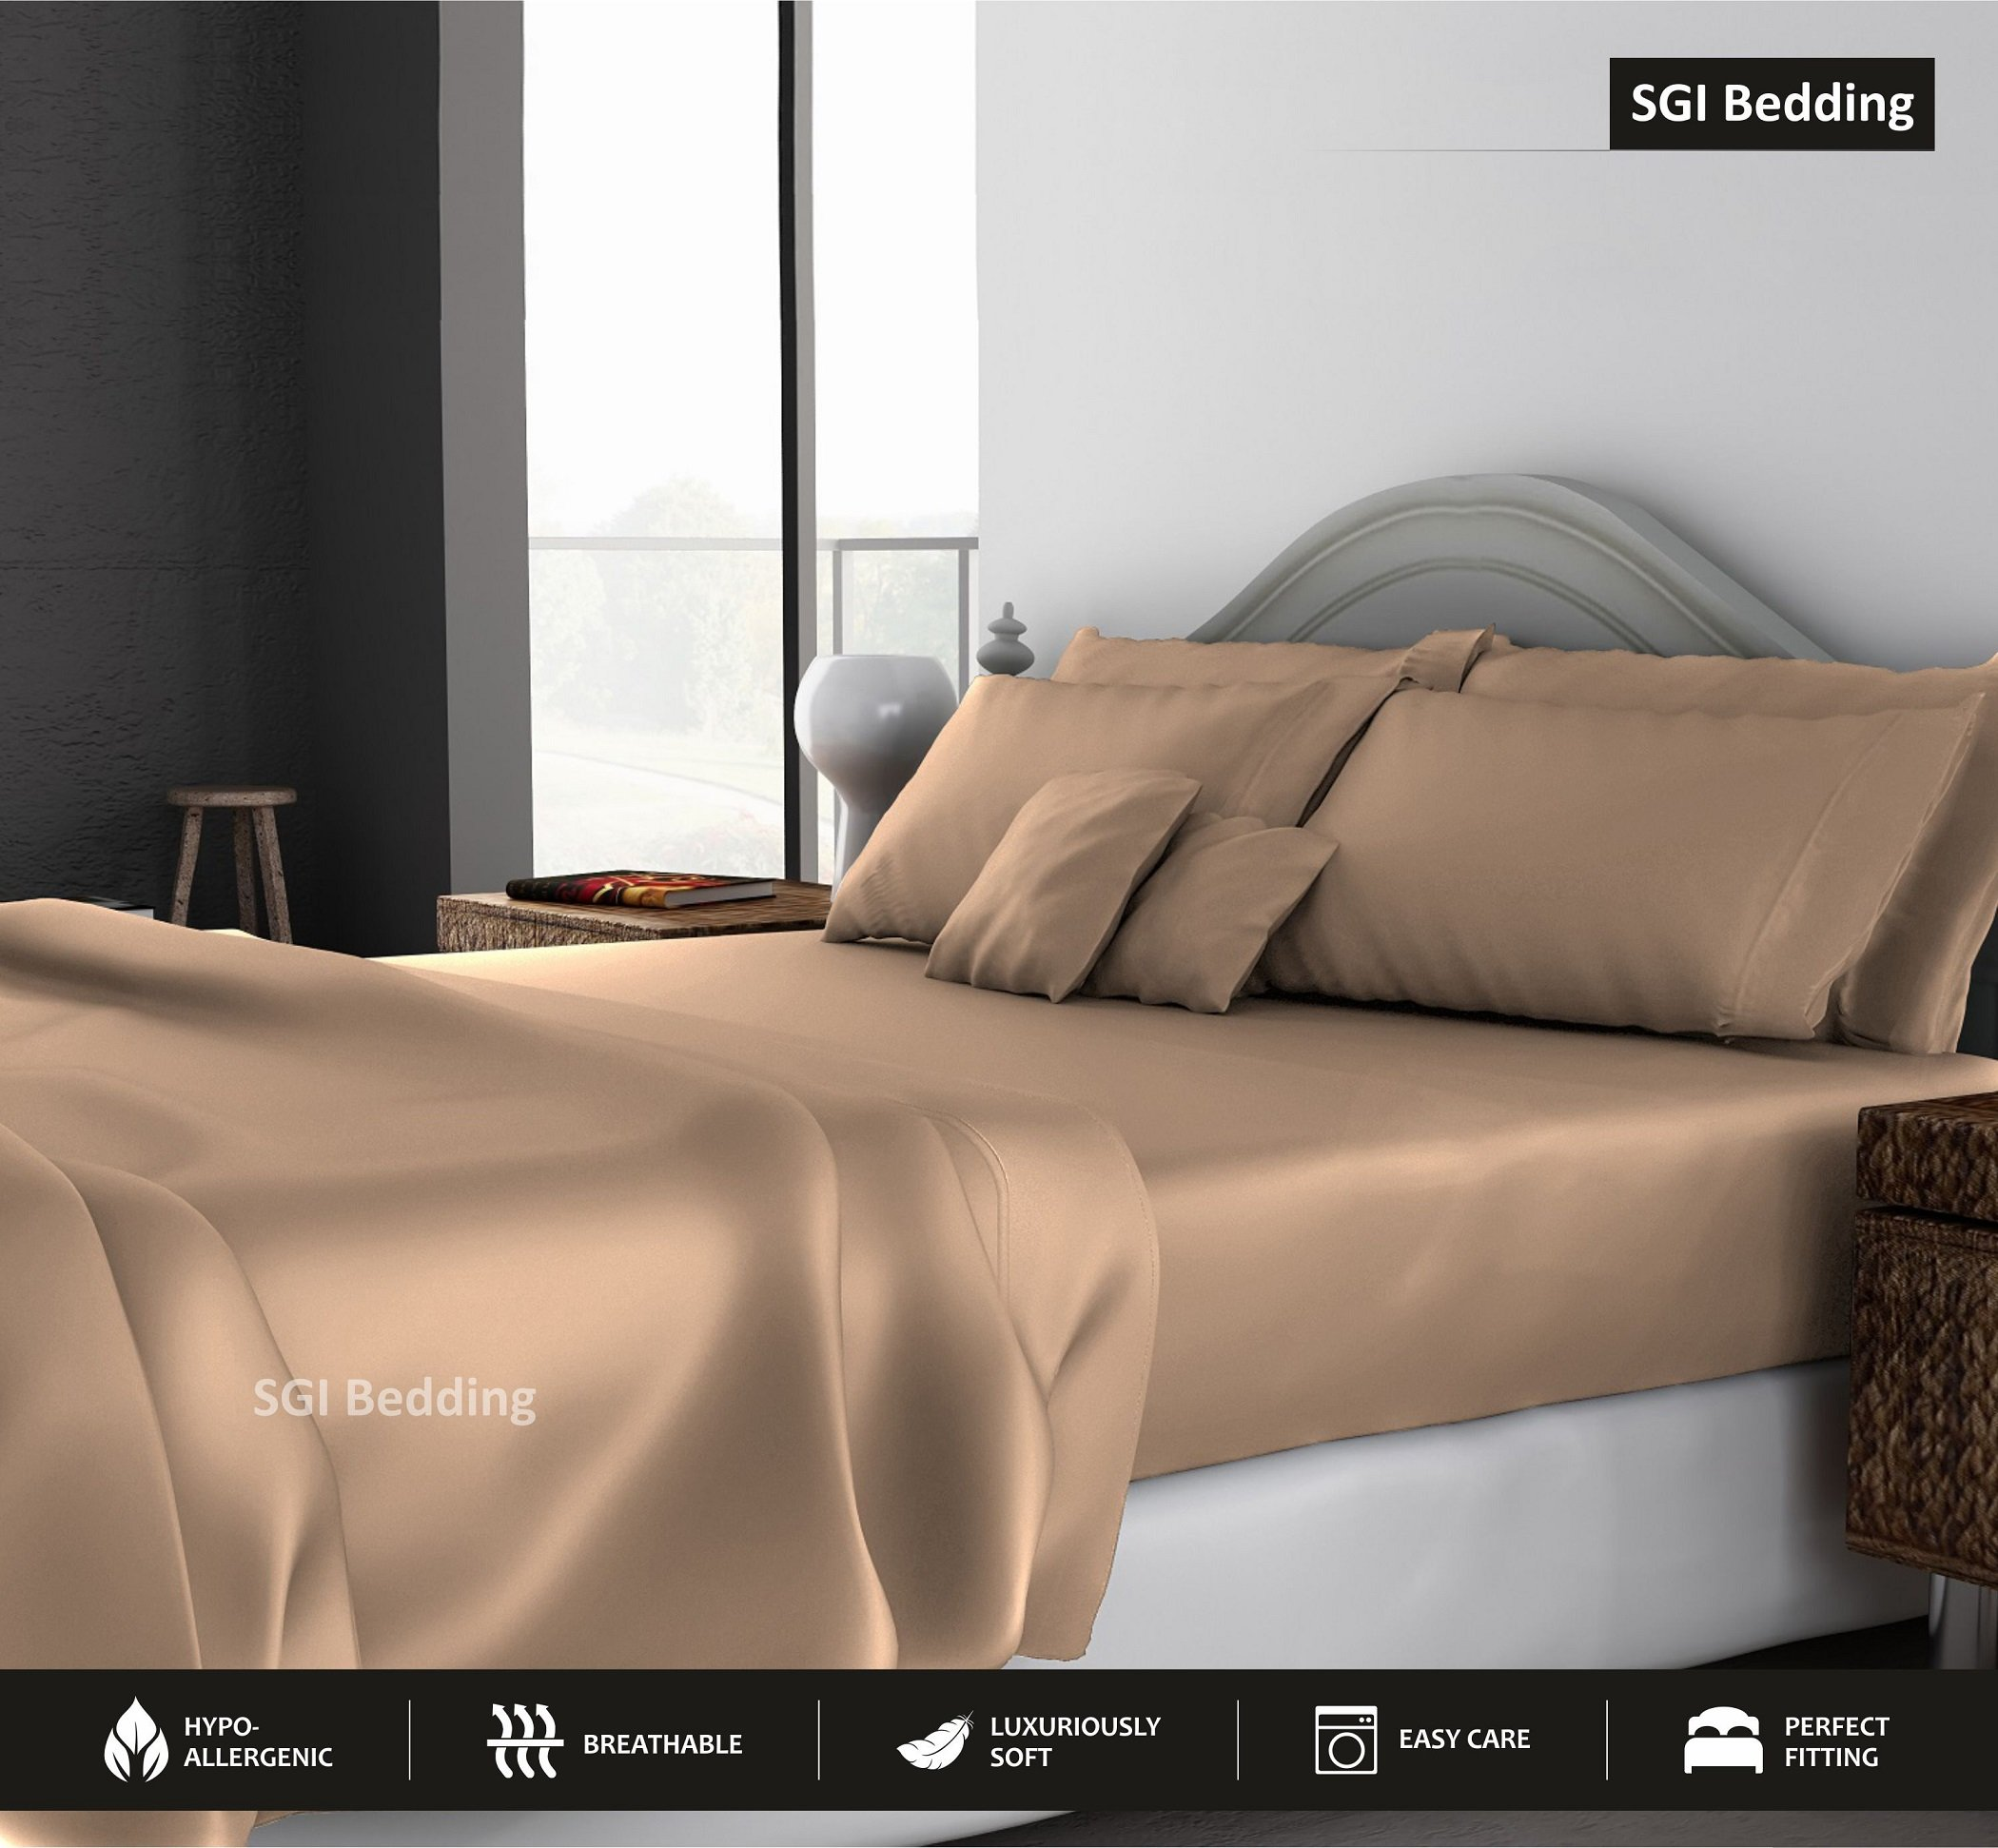 SGI bedding Queen Sheets Luxury Soft 100% Egyptian Cotton -Classic Collection Bed Sheet Set for Queen Mattress Taupe Solid 1000 Thread Count Deep Pocket